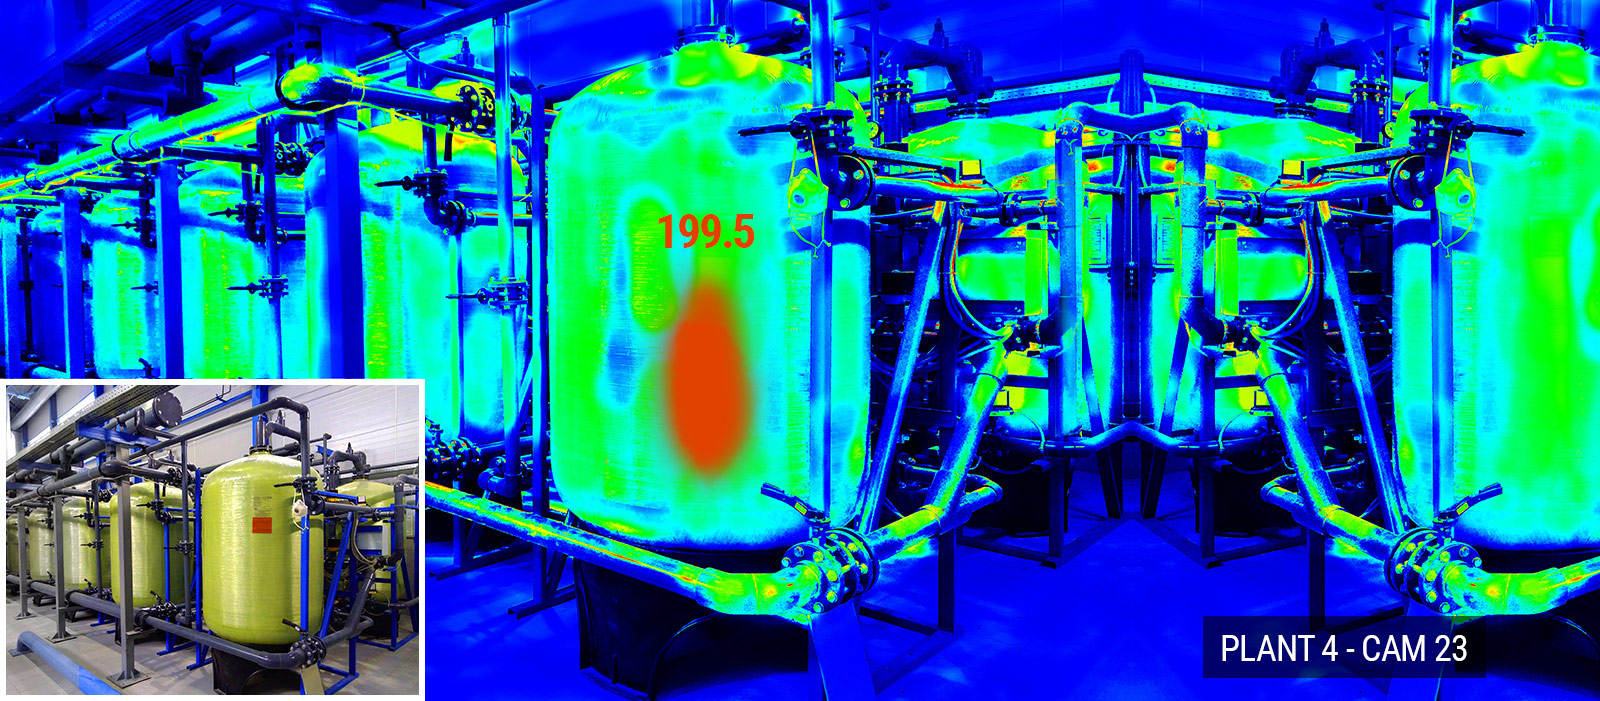 Thermal Imaging - Tanks in a Plant